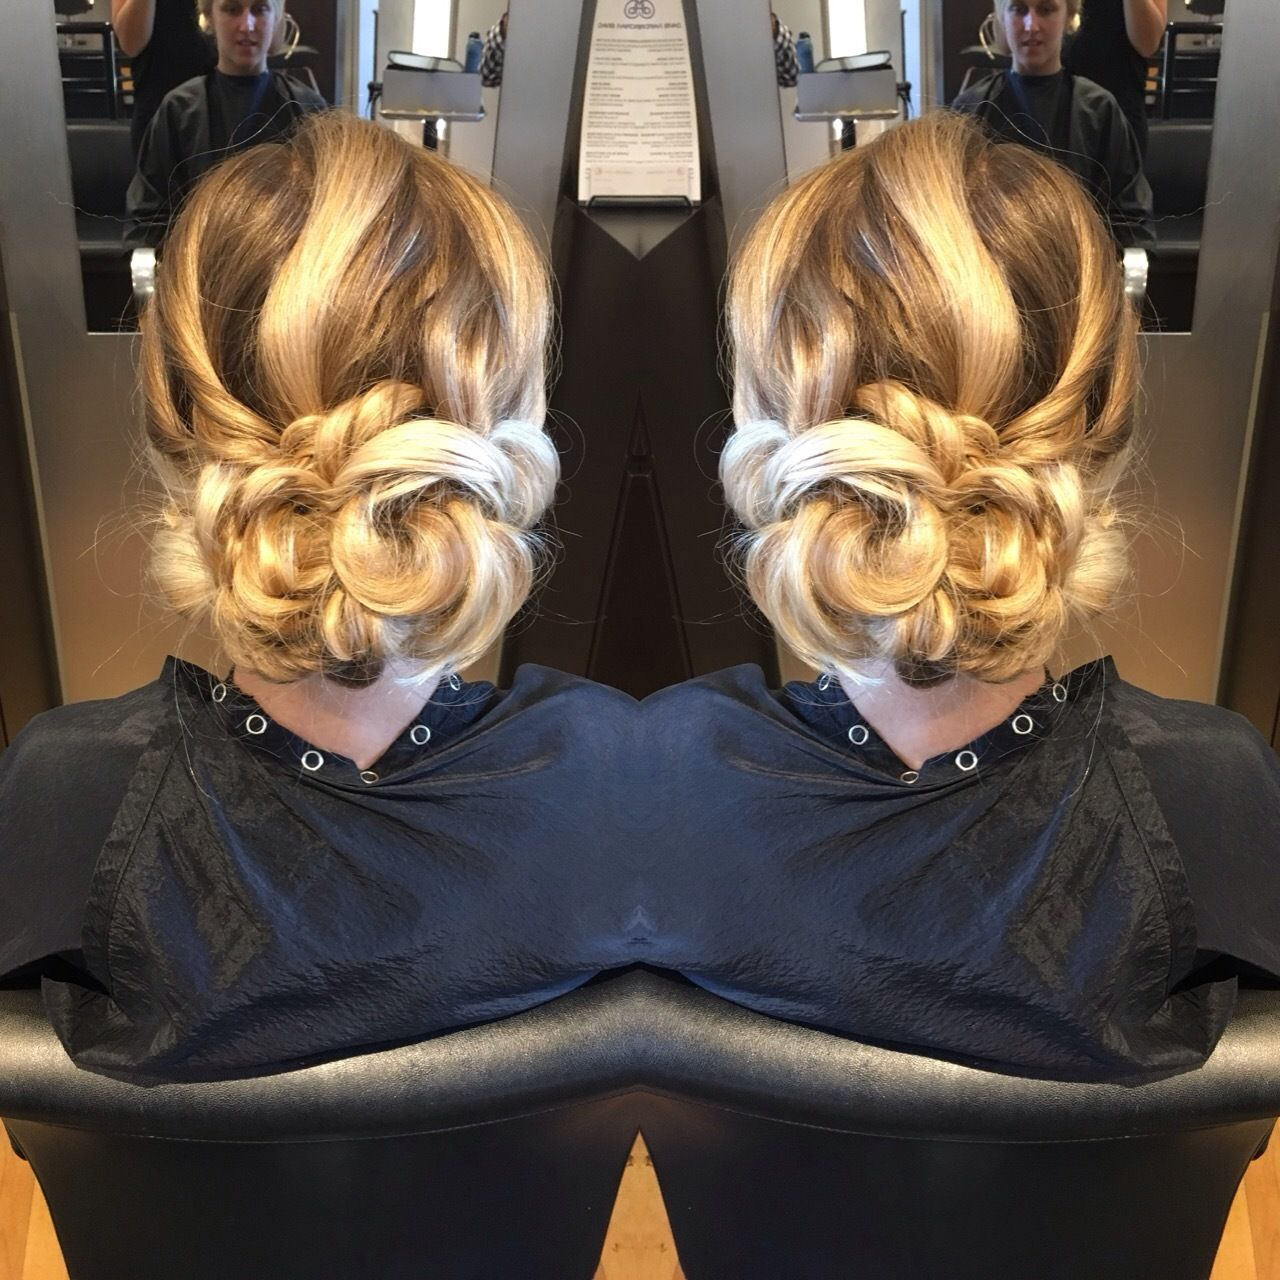 Love this fun, twisty updo by Ryan!